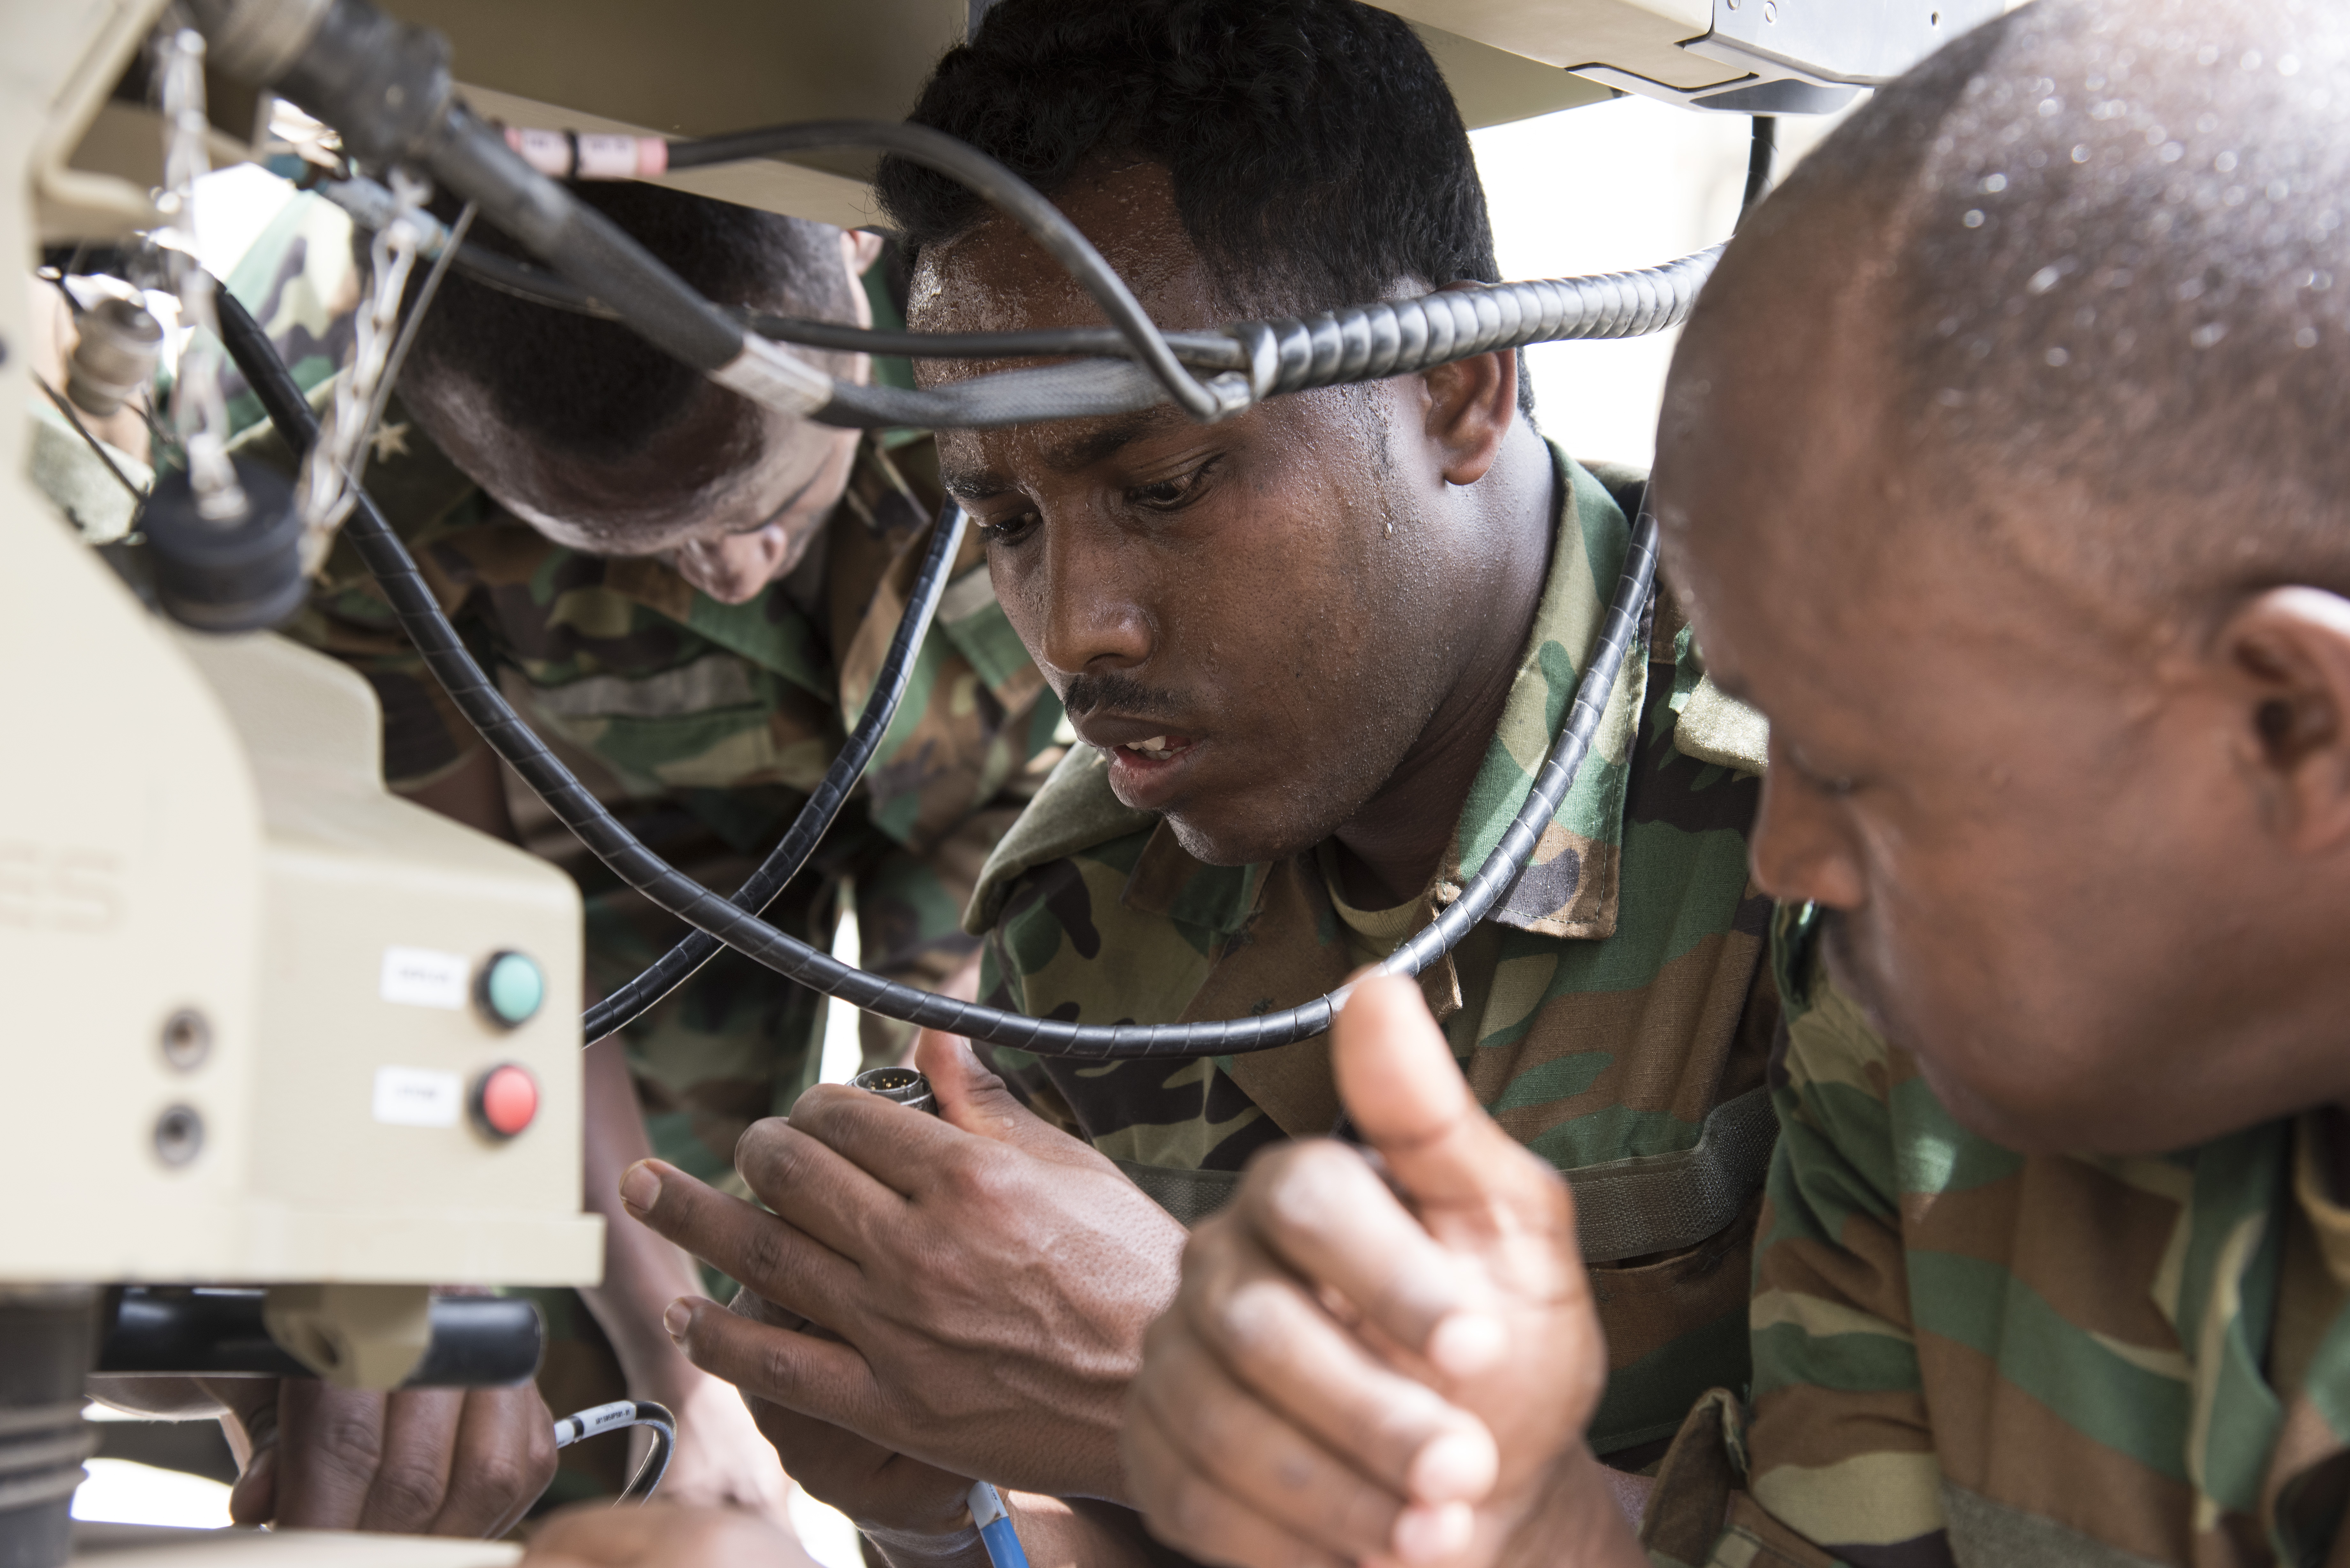 Members of the Ethiopian National Defense Force (ENDF) inspect connection cables during setup of a U.S. Africa Command Data Sharing Network (ADSN) terminal at Camp Lemonnier, Djibouti, Aug. 18, 2015. ENDF personnel were tested on how quickly they could setup and tear down the field communication system as part of a multi-week ADSN course, which was hosted by Combined Joint Task Force-Horn of Africa communications and intelligence personnel, and was designed to broaden communication interoperability between host nation security forces. (U.S. Air Force photo by Staff Sgt. Nathan Maysonet/released)